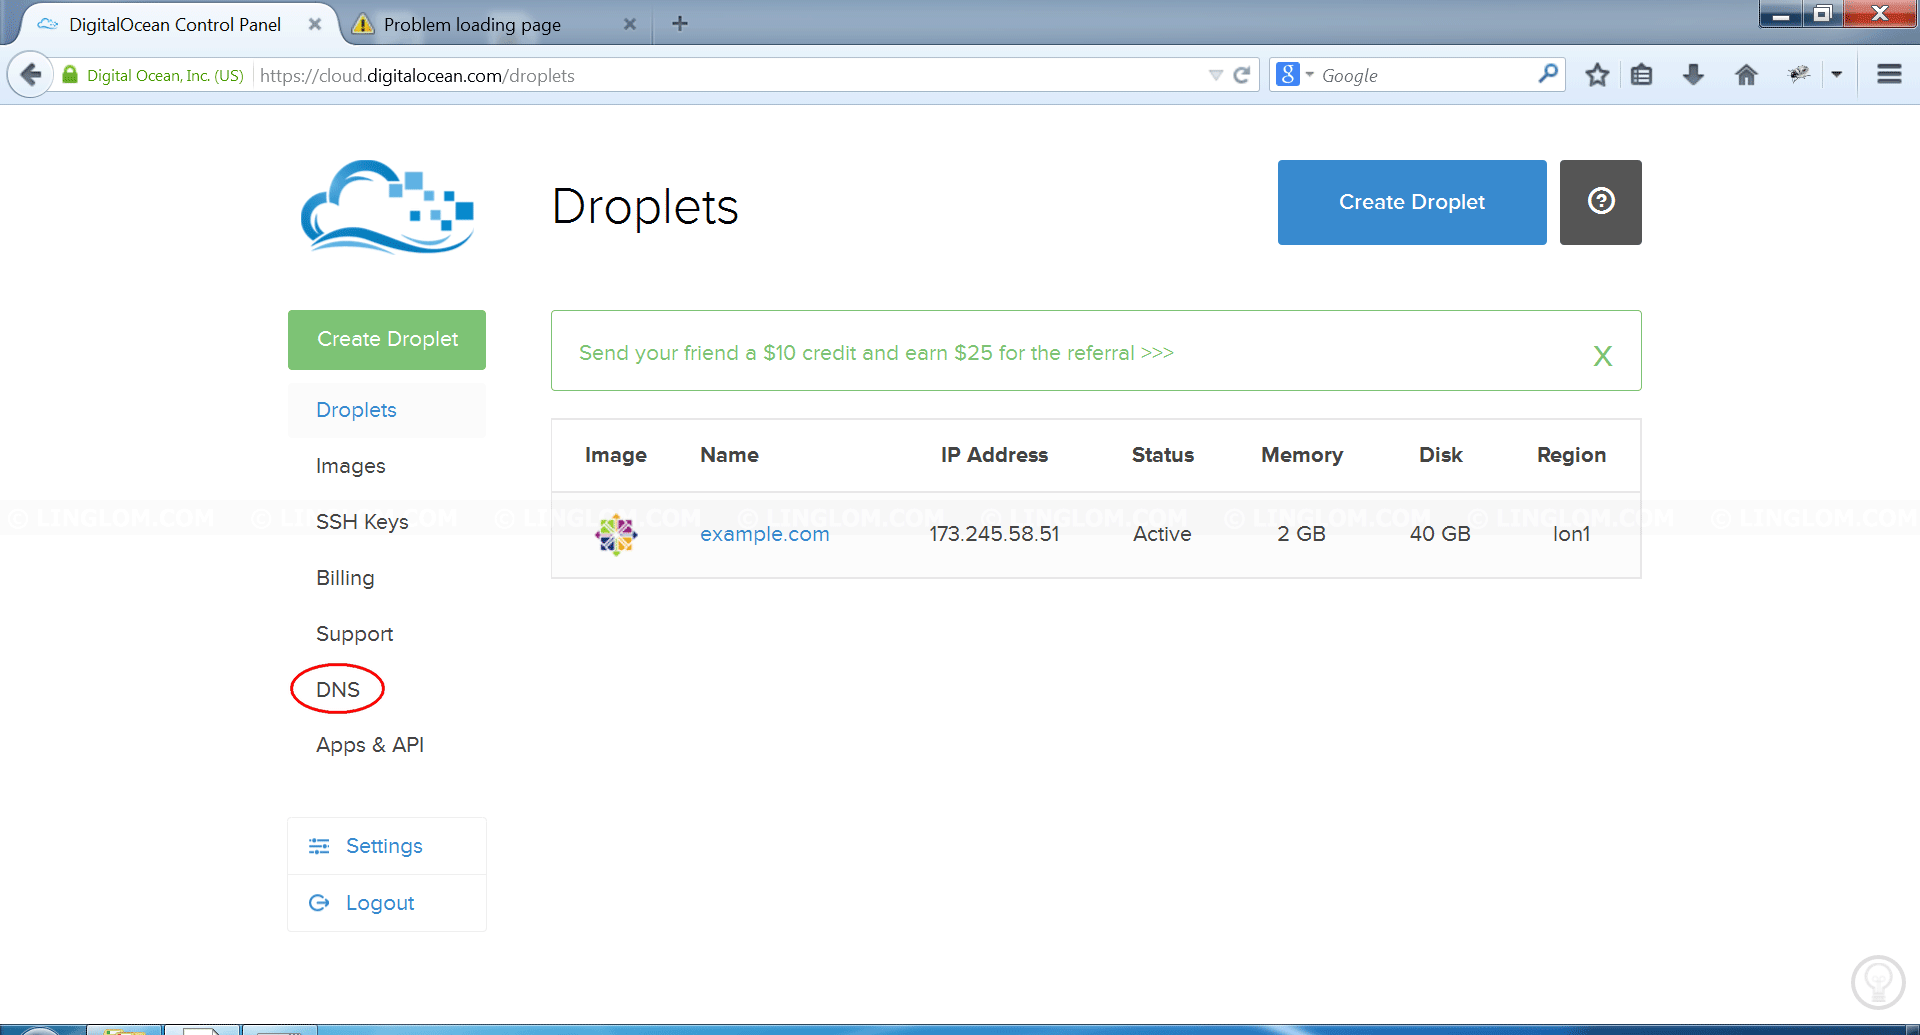 Control Panel on DigitalOcean